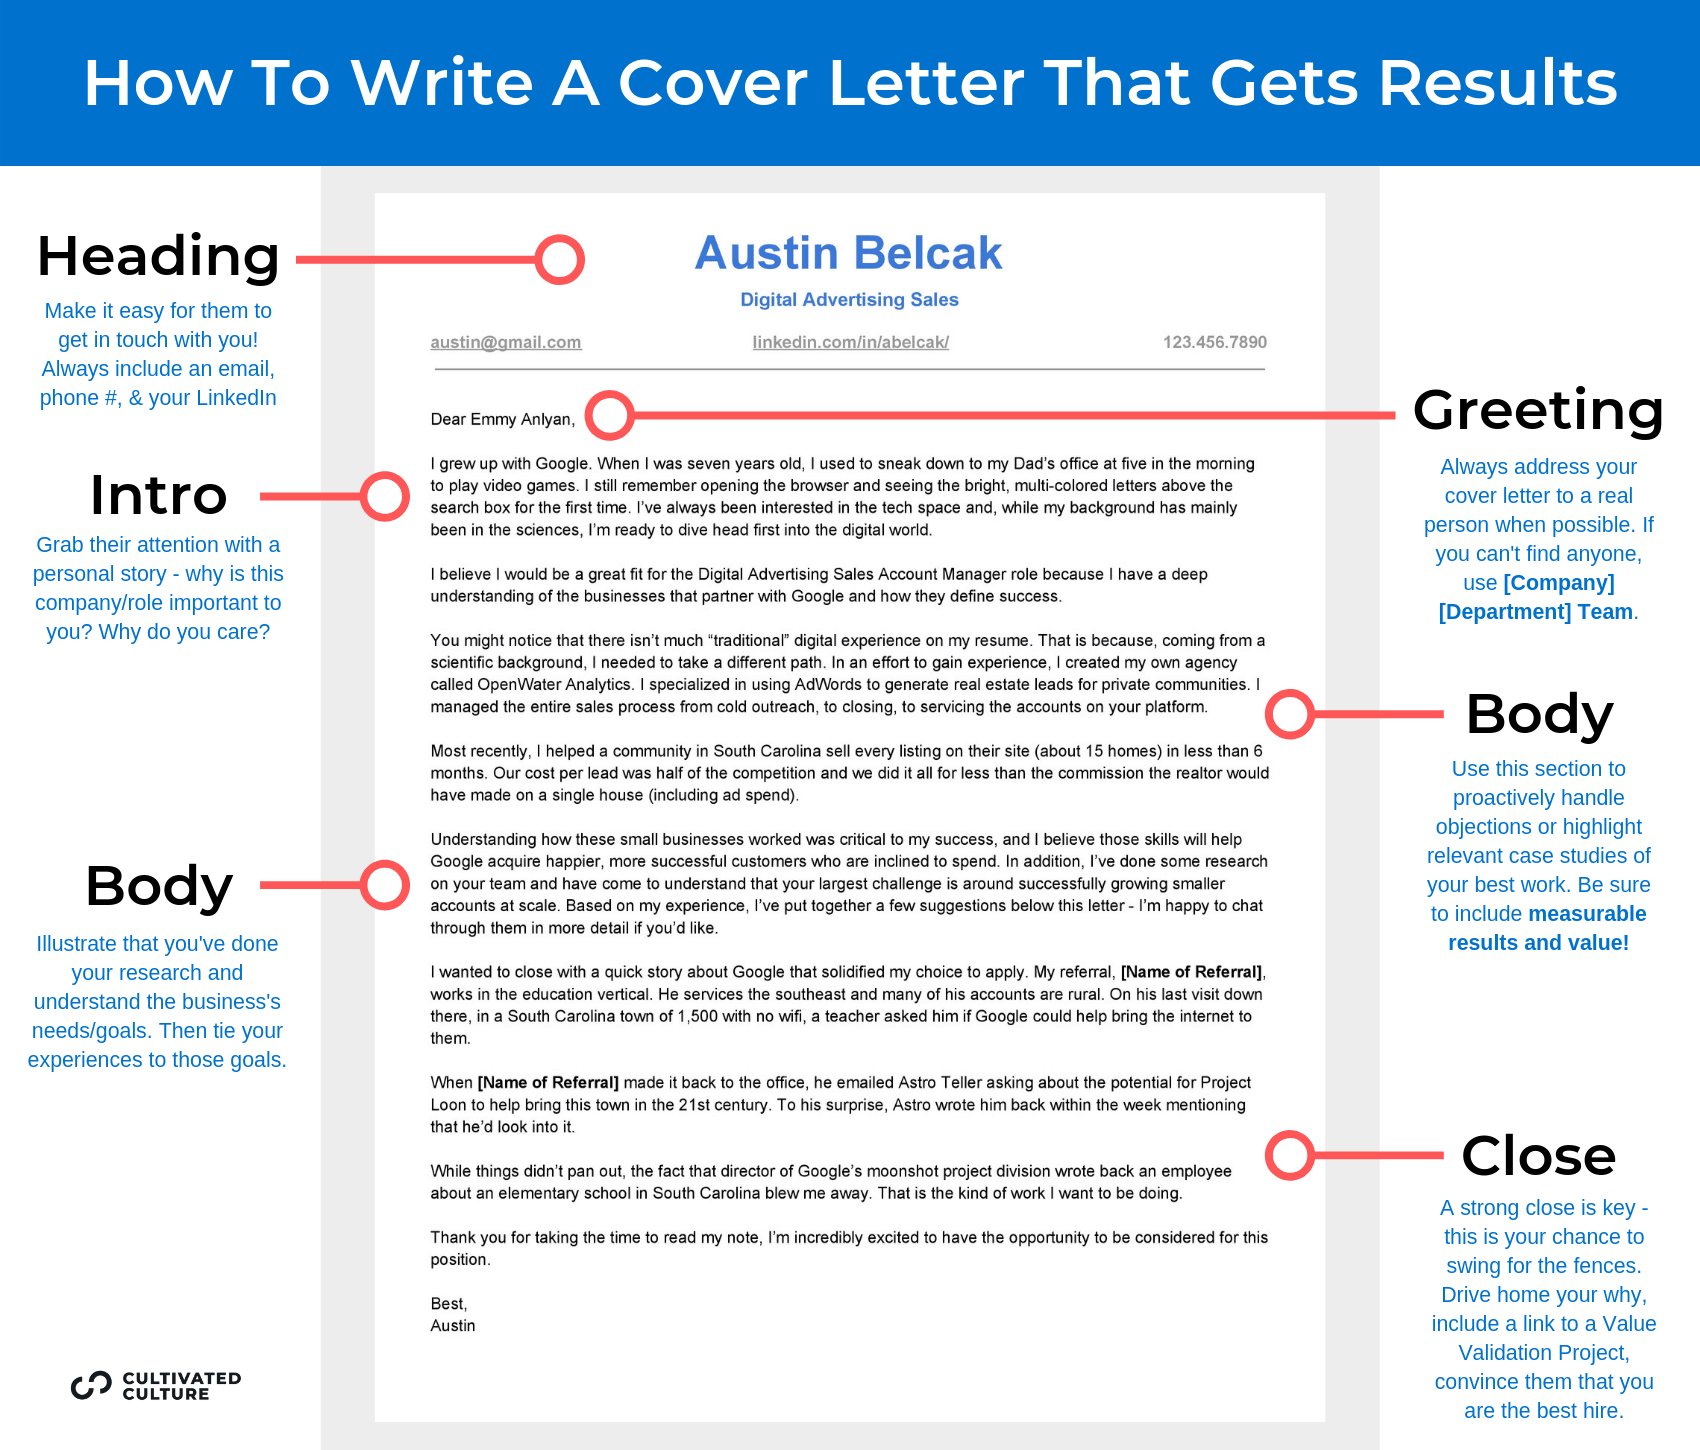 Infographic - Breakdown of Writing A Cover Letter That Gets Results